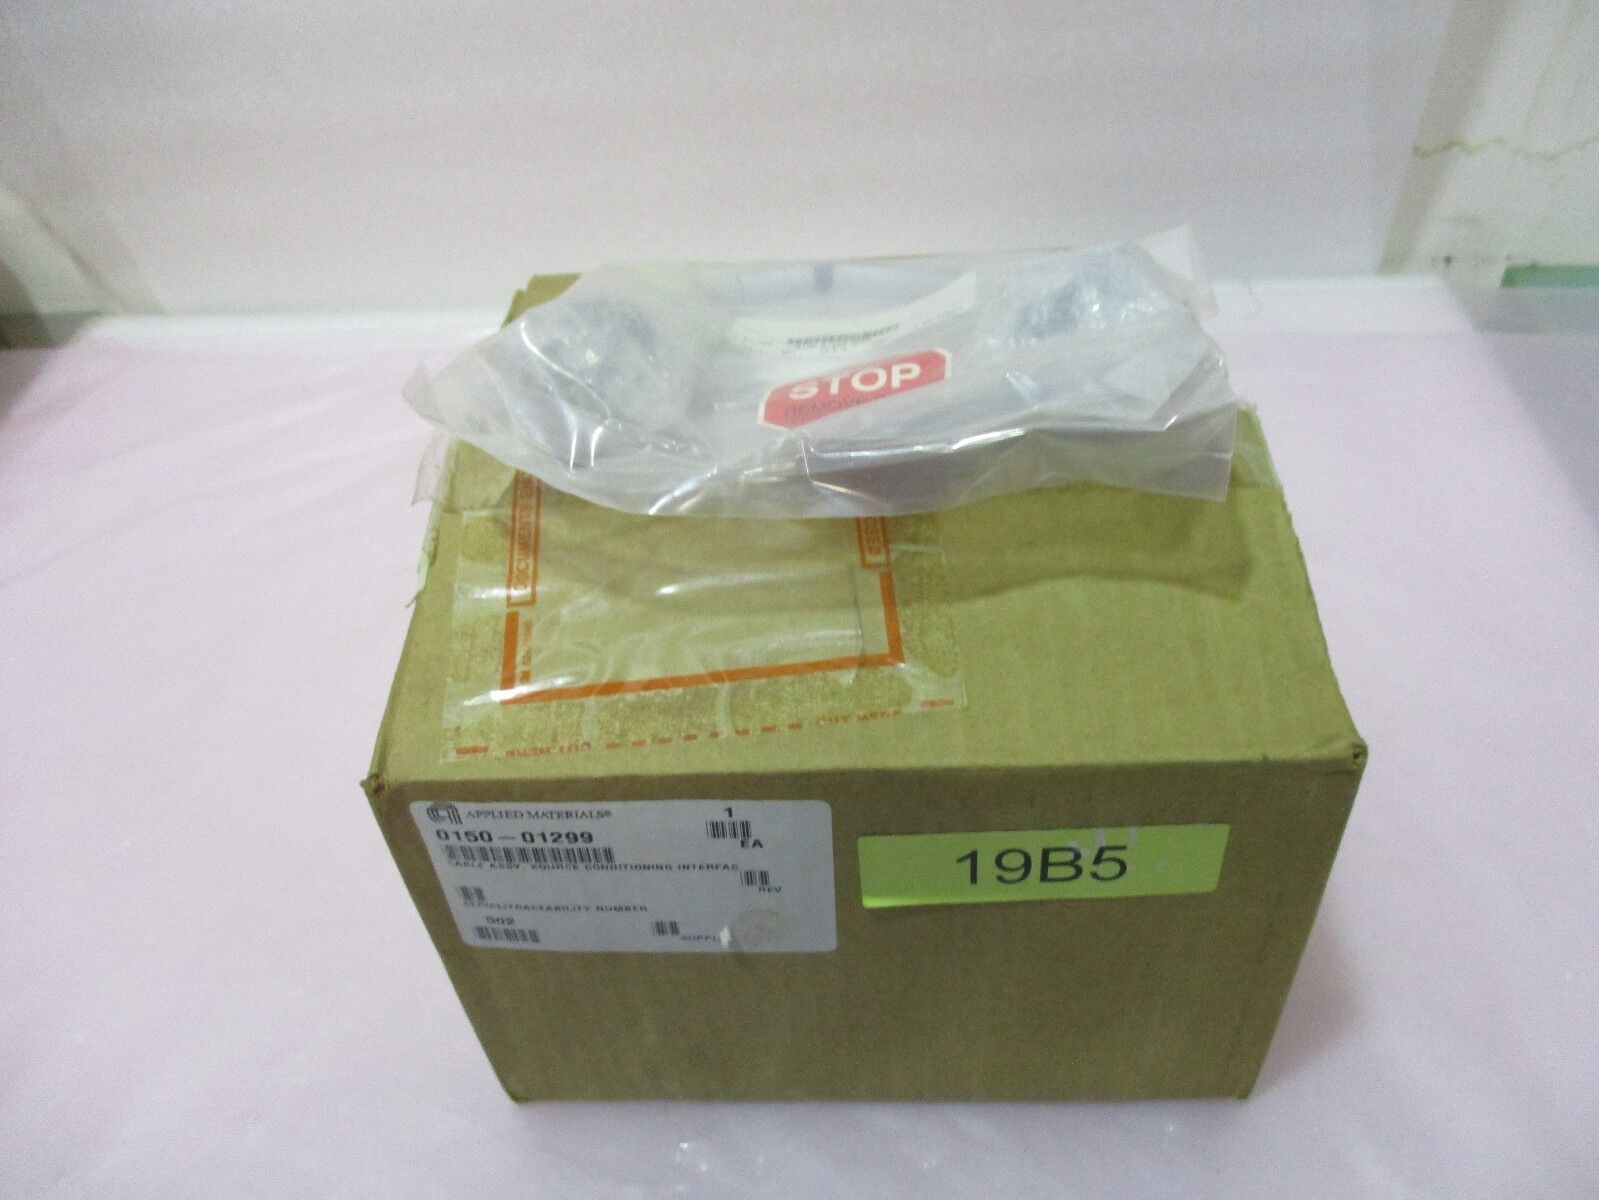 AMAT 0150-01299 Cable Assembly, Source Conditioning Interface, 420919